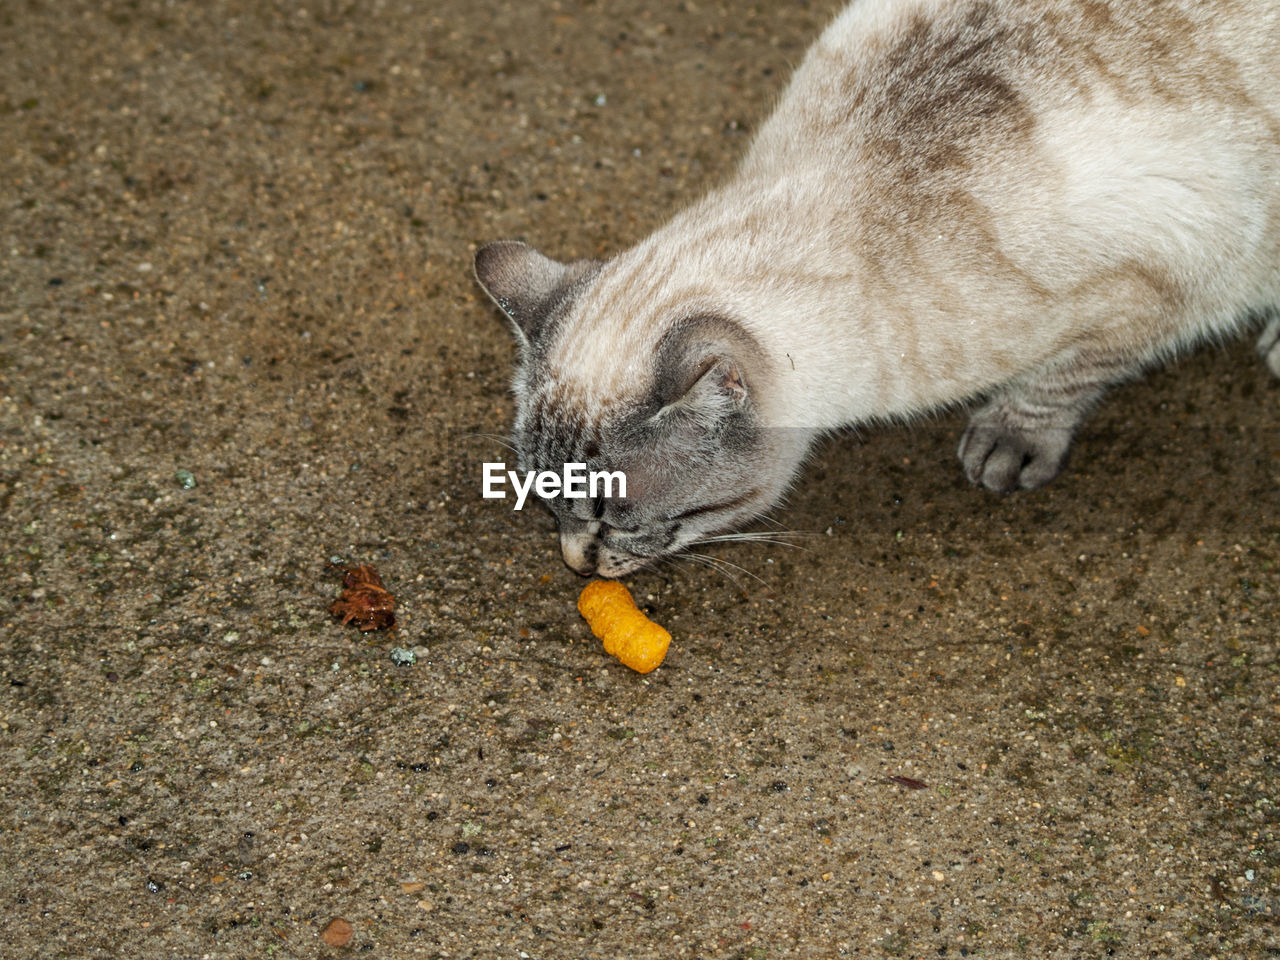 animal, animal themes, one animal, mammal, cat, domestic cat, food and drink, domestic animals, domestic, vertebrate, food, pets, feline, healthy eating, fruit, eating, high angle view, no people, land, day, hungry, whisker, mouth open